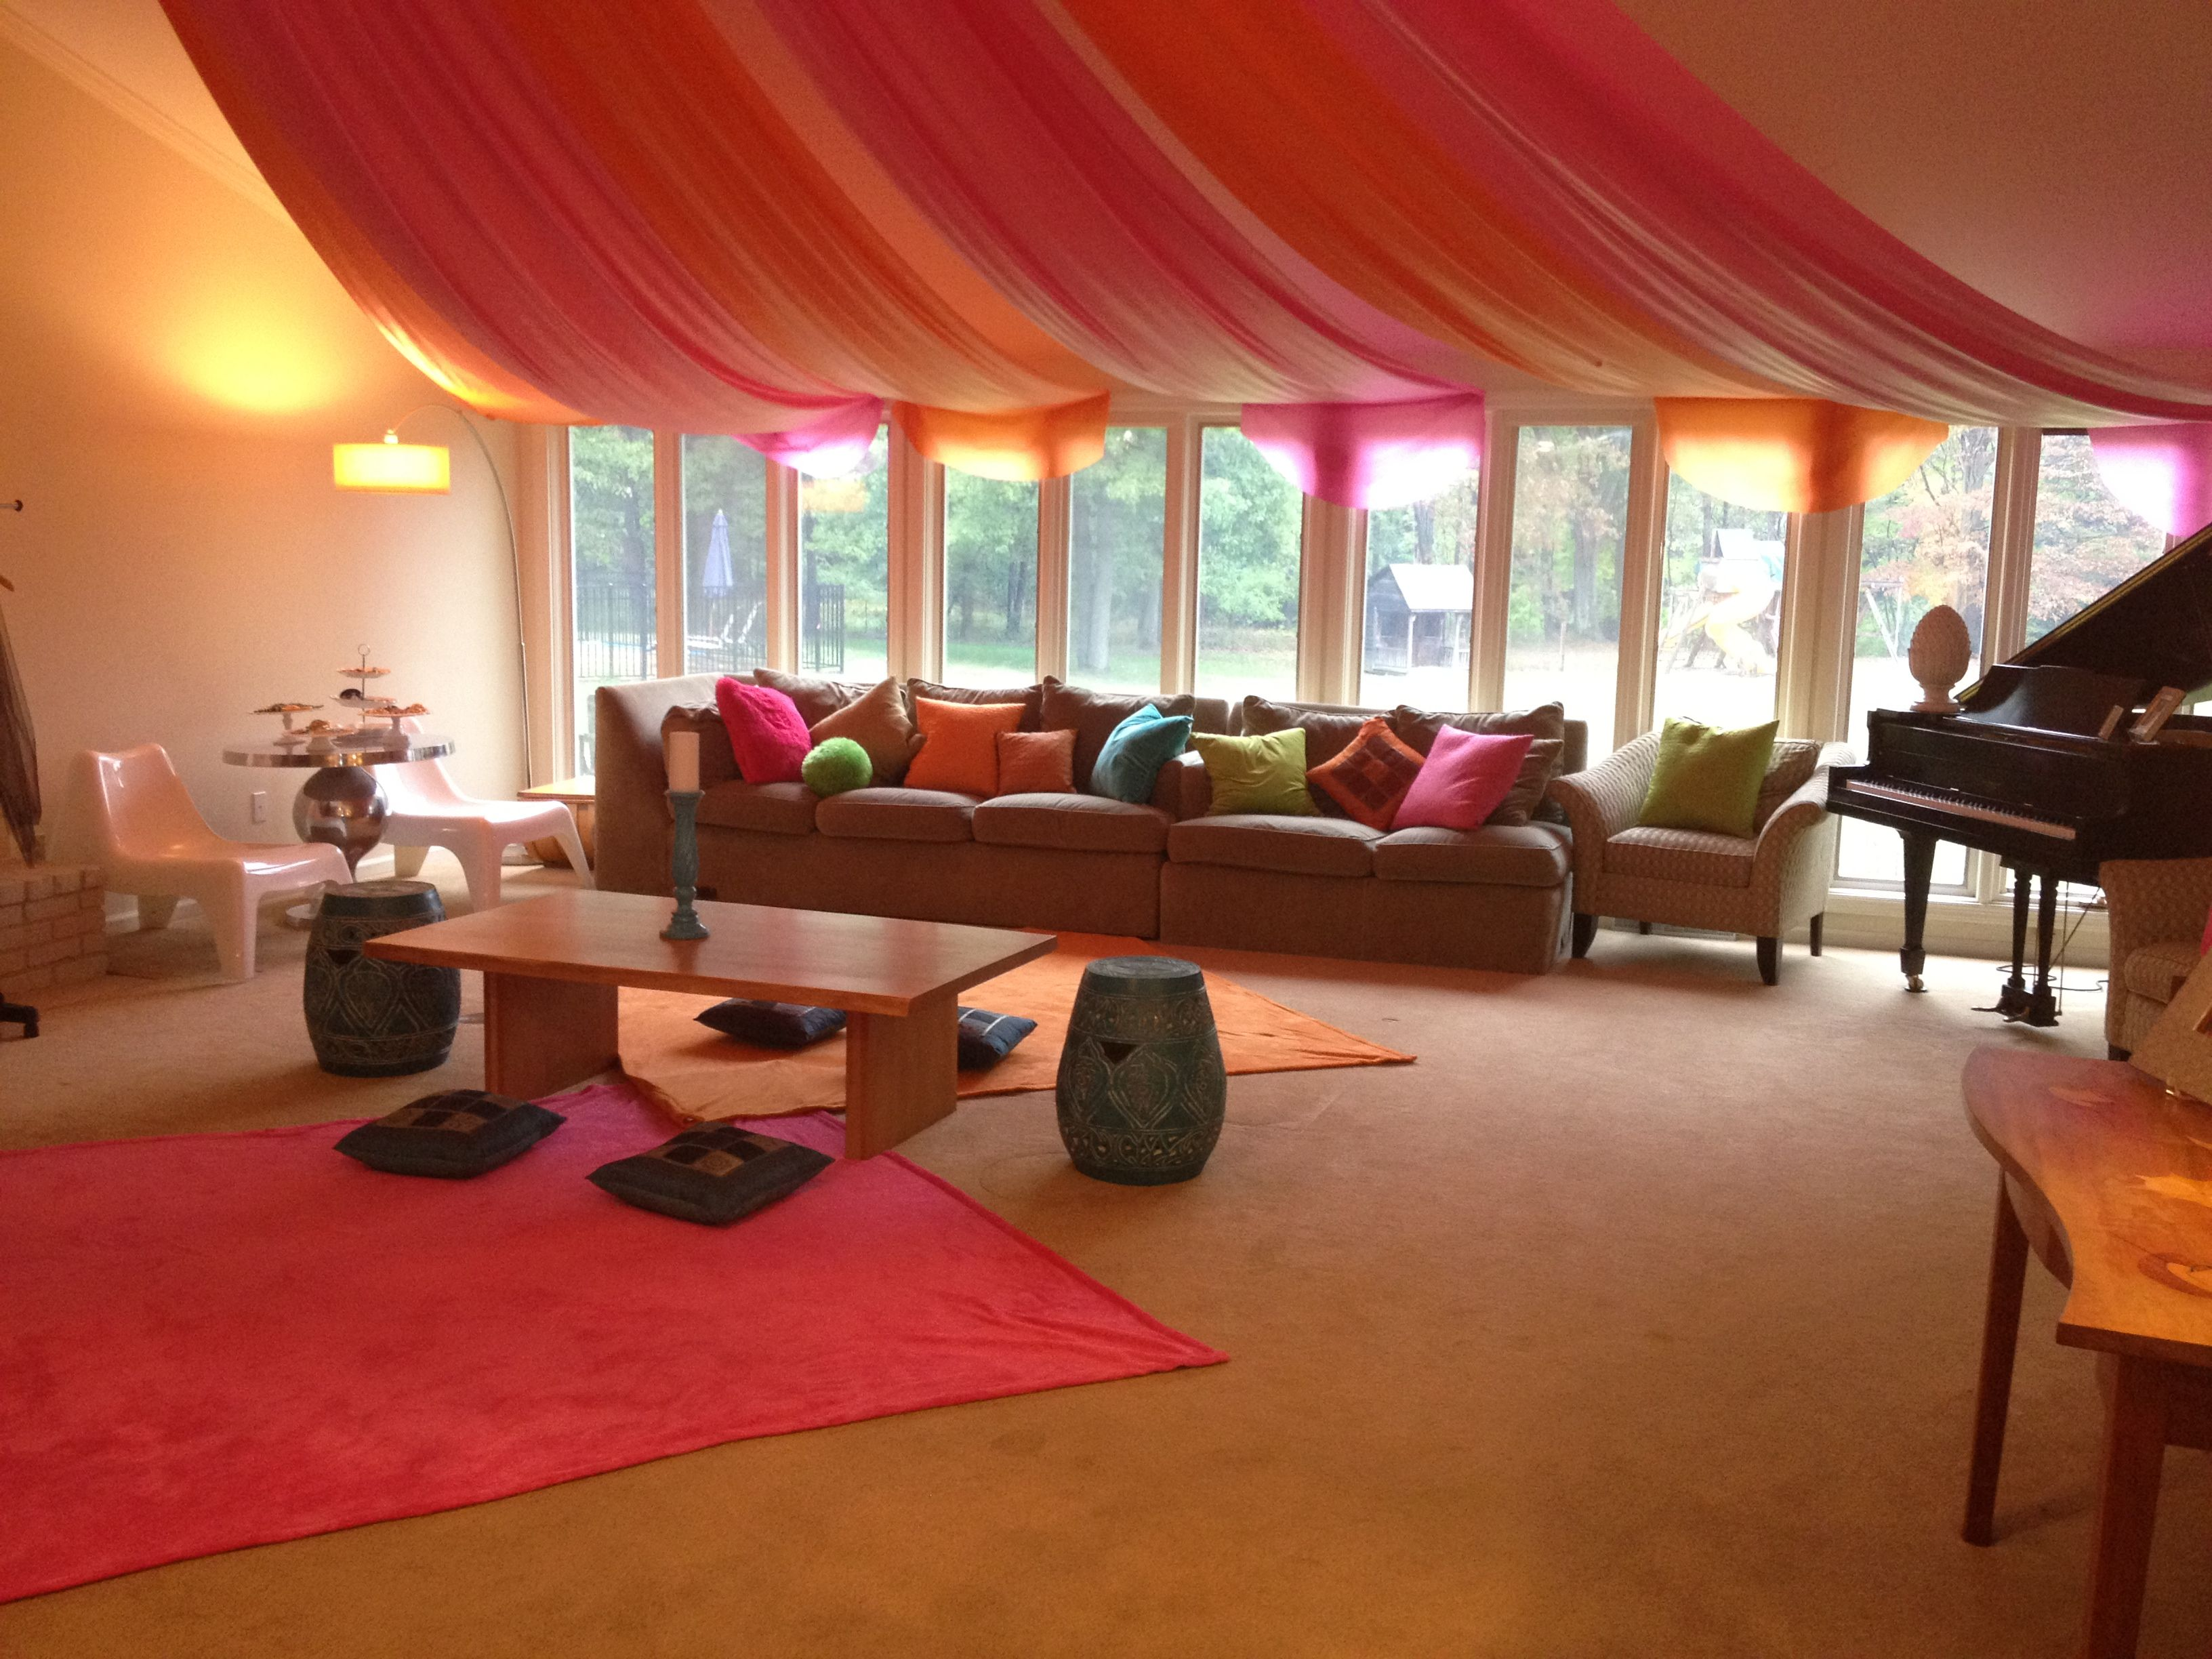 Slumber Party Super Sophisticated Moroccan Tent - Hippy Den Ideas